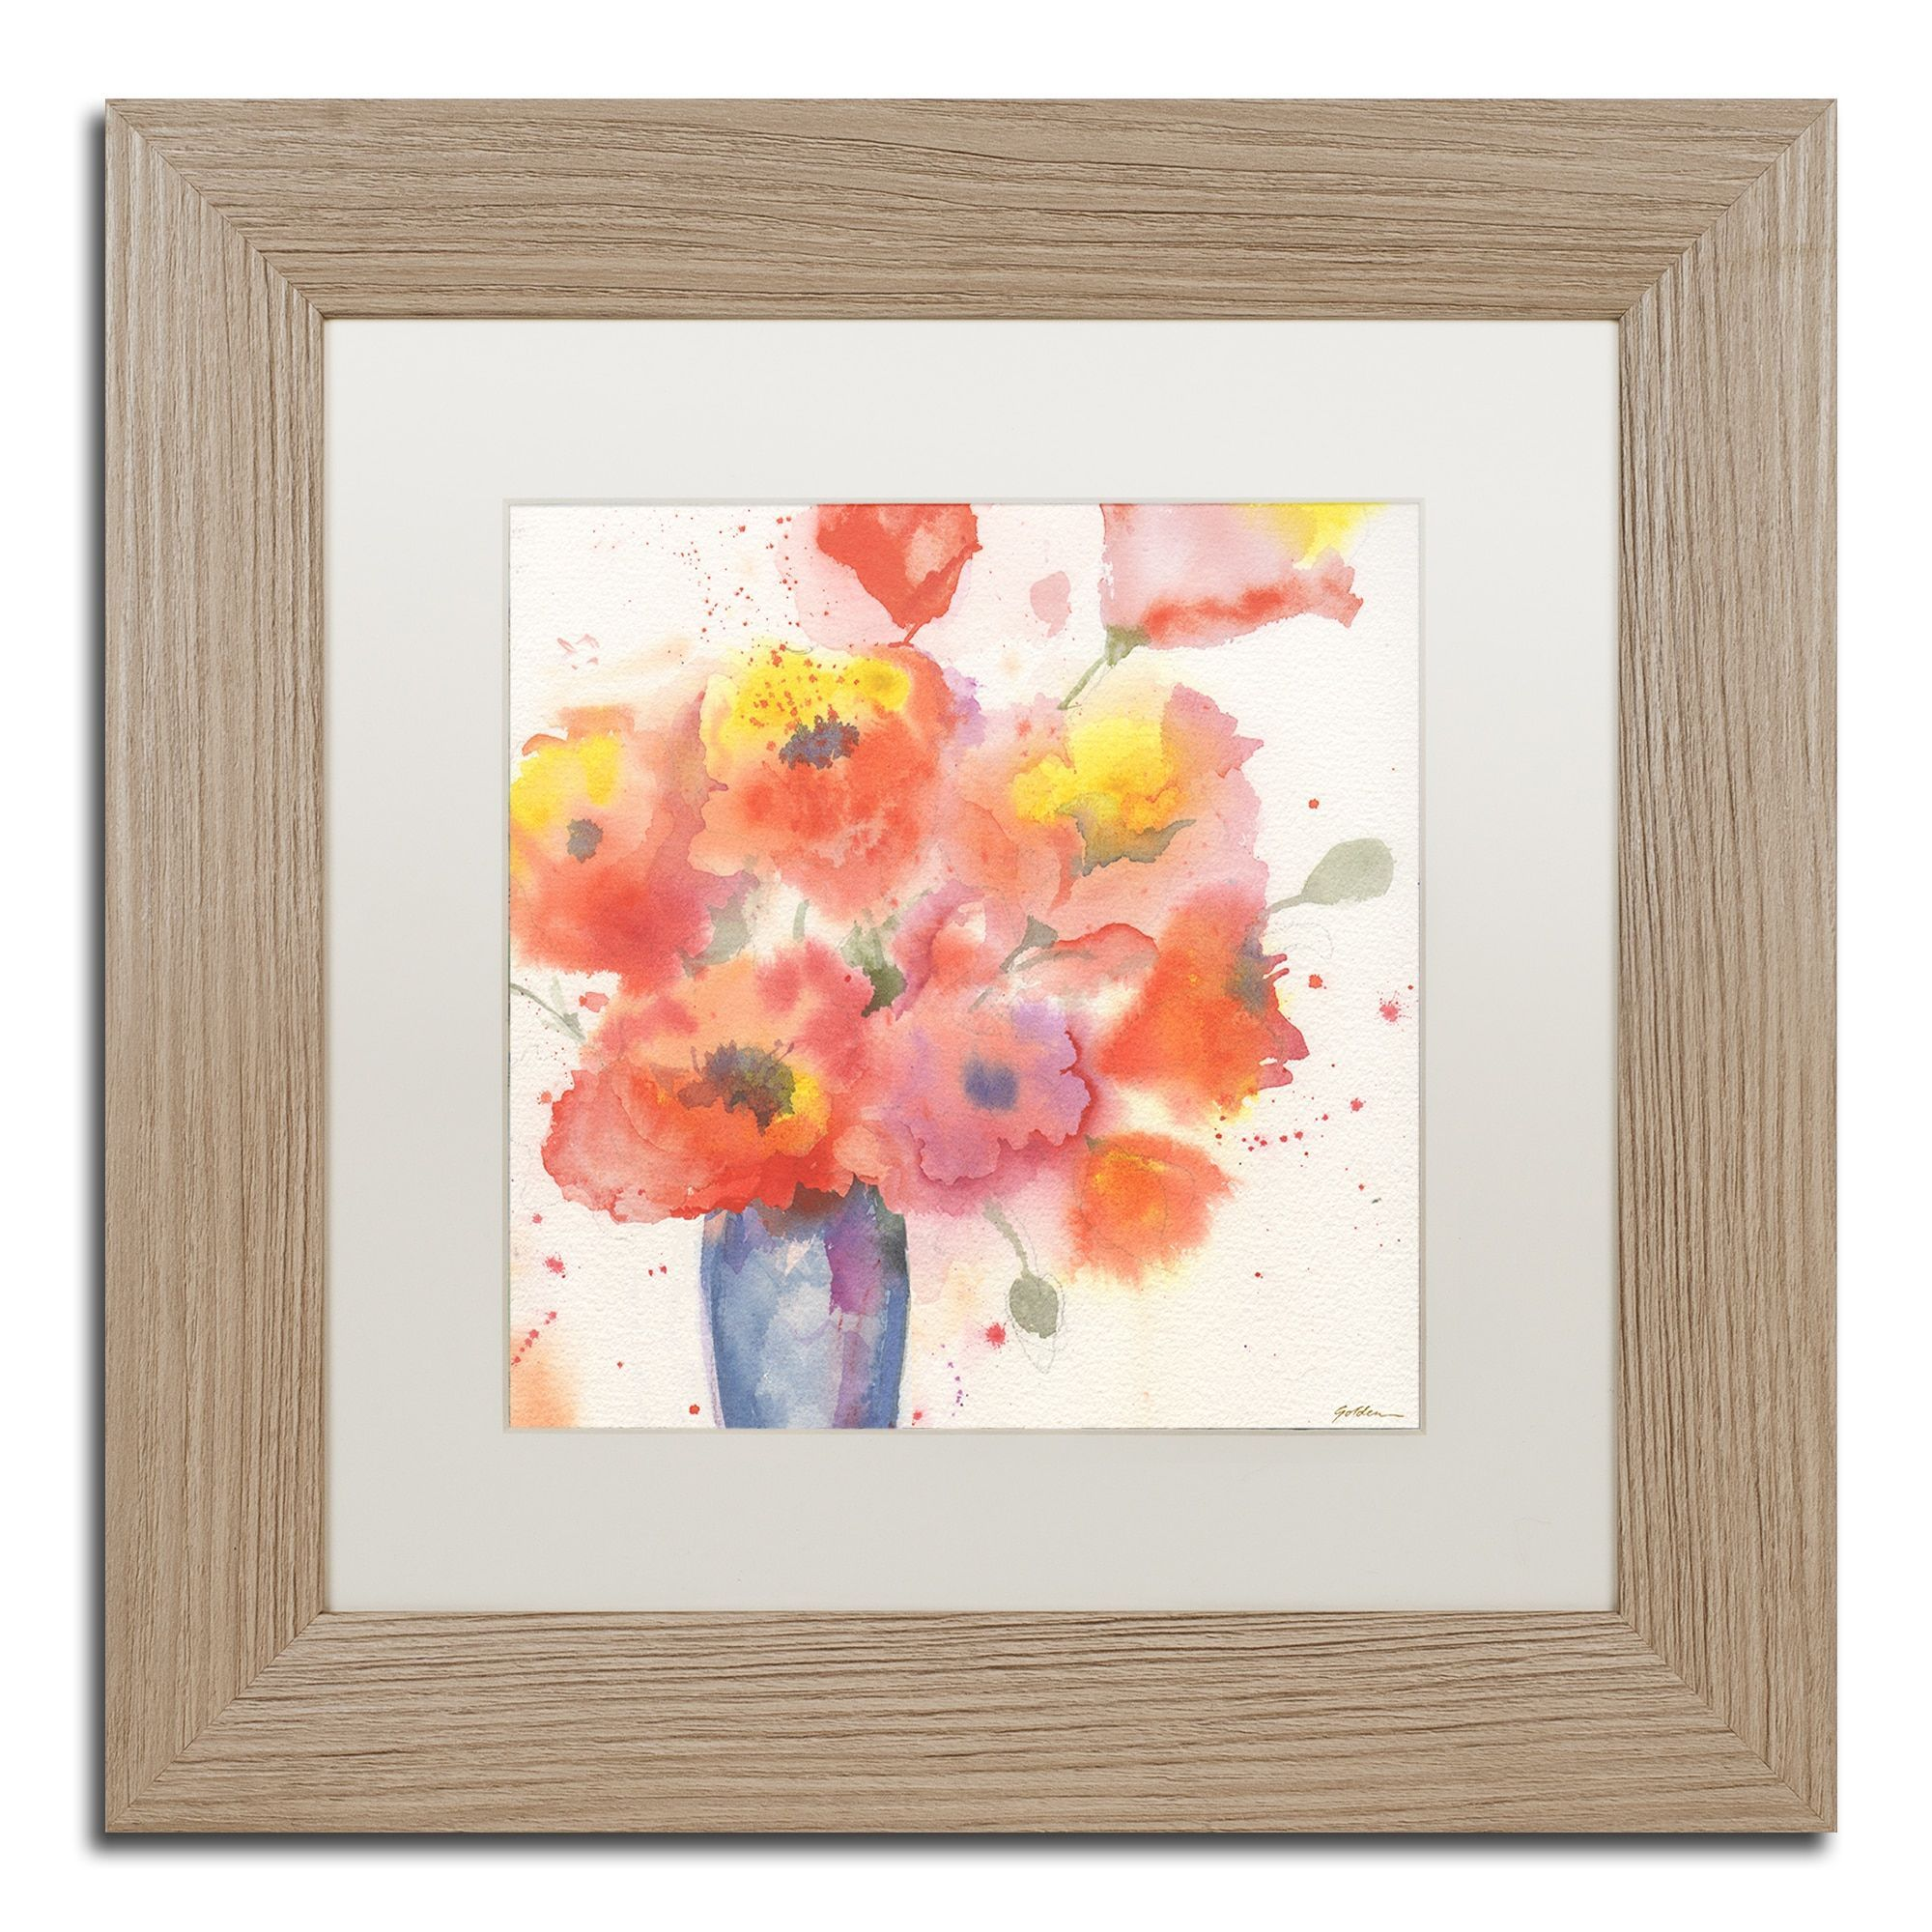 Sheila Golden Vase Of Poppies 5 Matted Framed Art Products